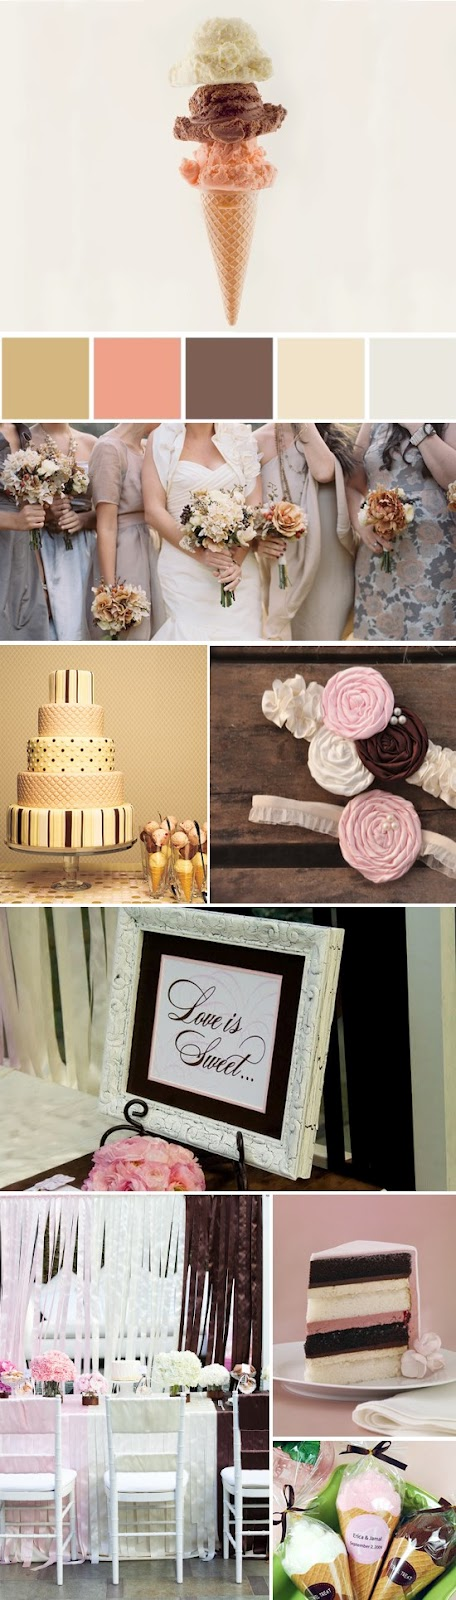 Sugary sweet wedding color inspiration